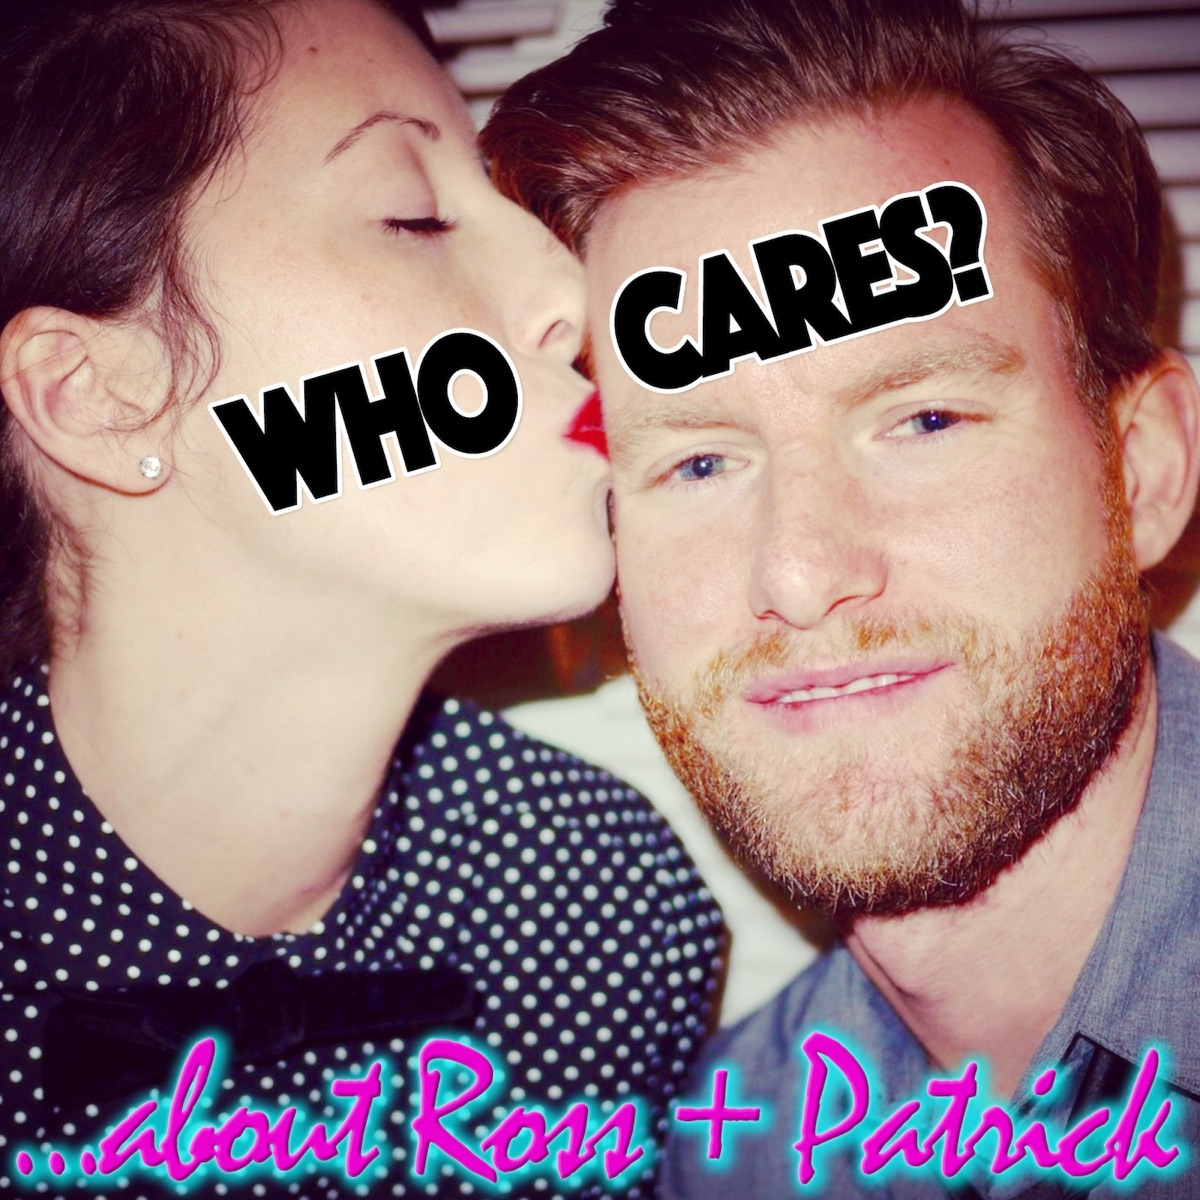 Who Cares? …about Ross & Patrick